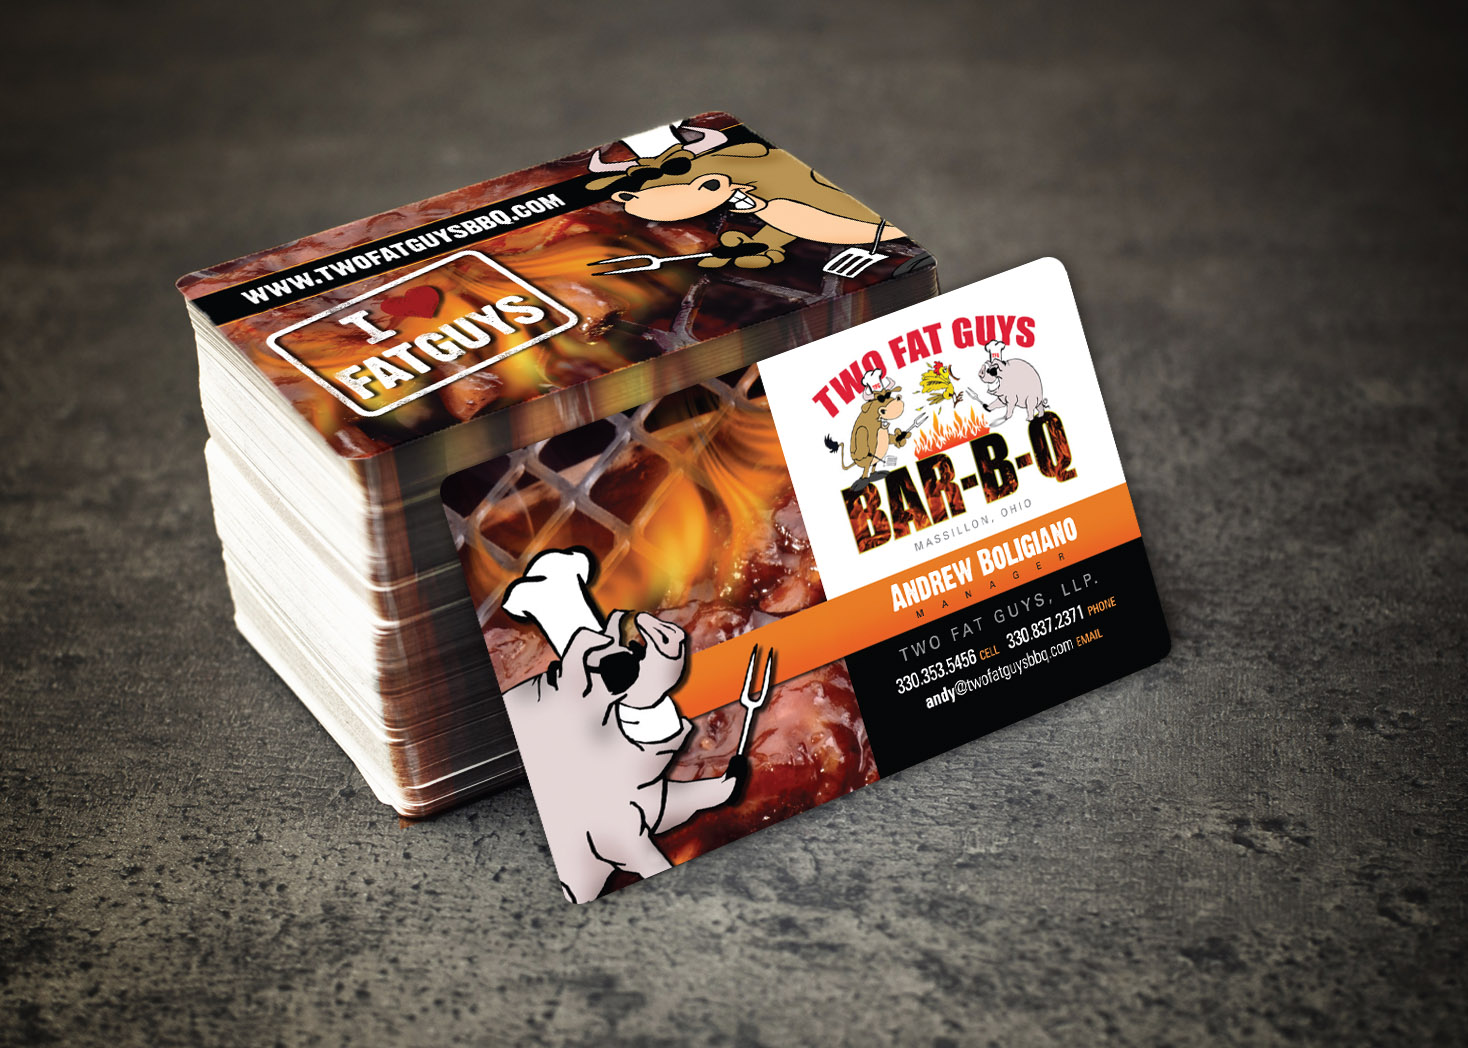 Two Fat Guys BBQ - Business Card Design - Lehman Design